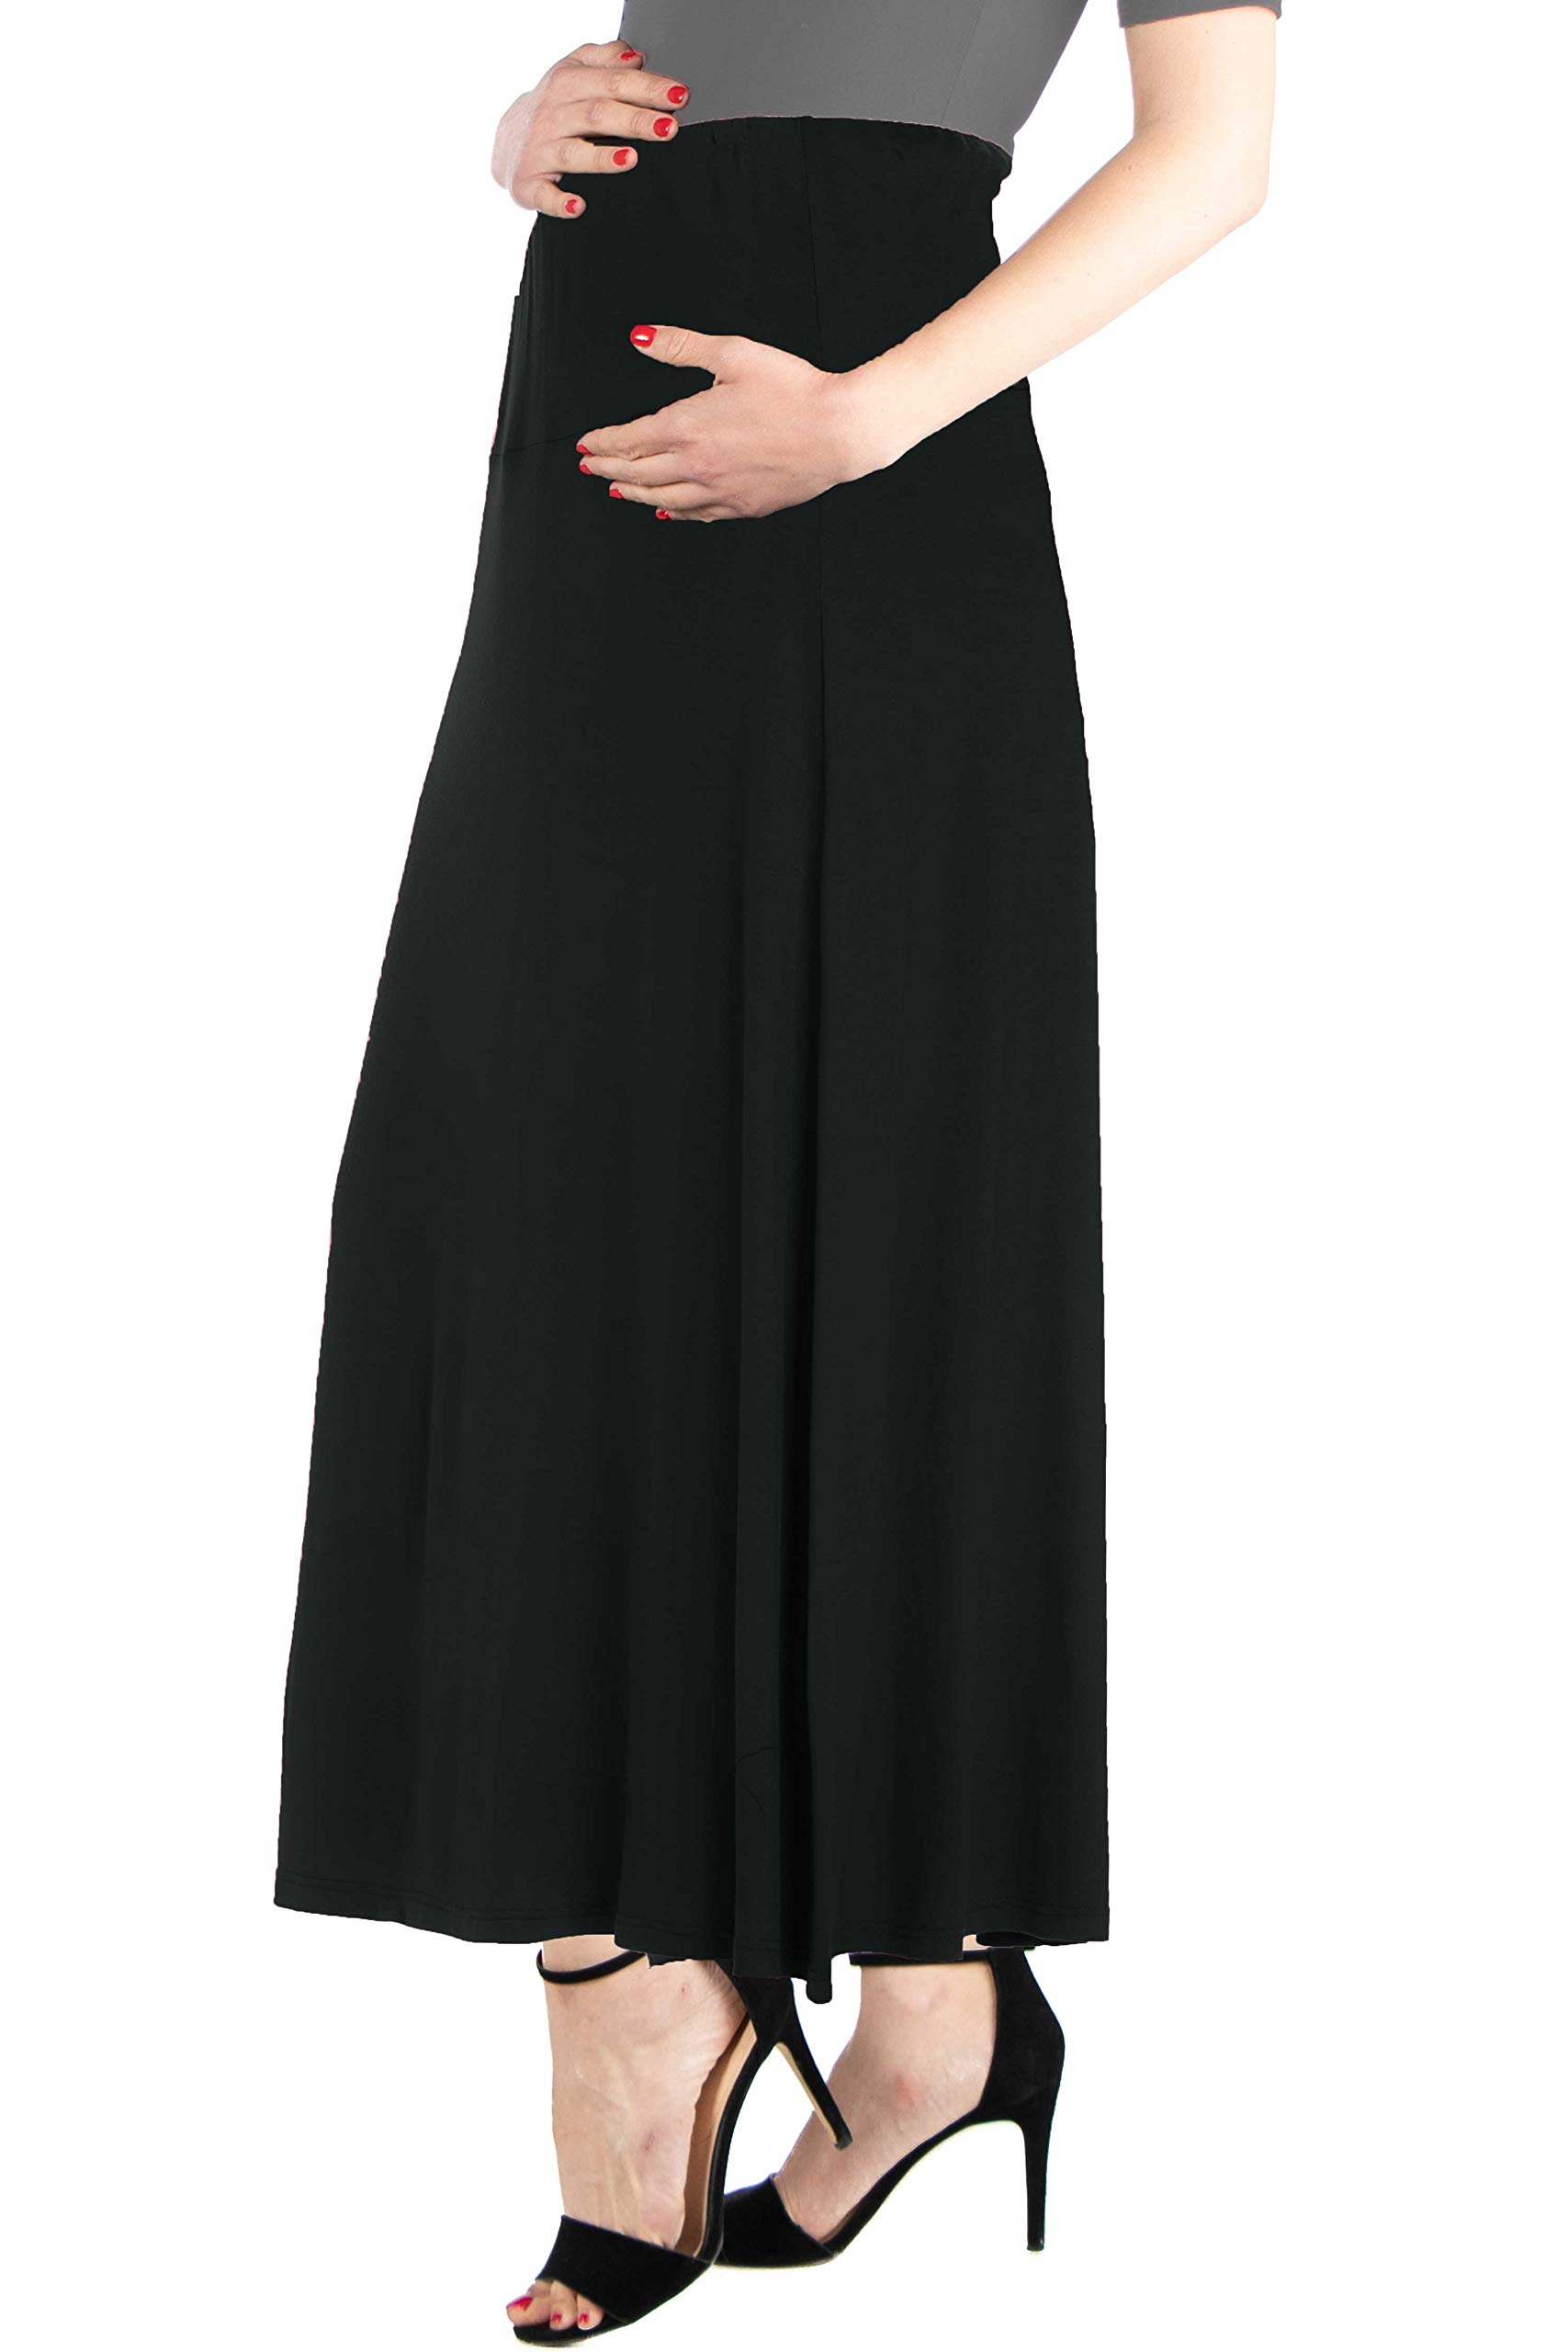 24seven Comfort Apparel Women's Plus Size Maternity Flared Maxi Skirt with Elastic Waistband - Made in USA - 6X-Large - Black by 24/7 Comfort Apparel